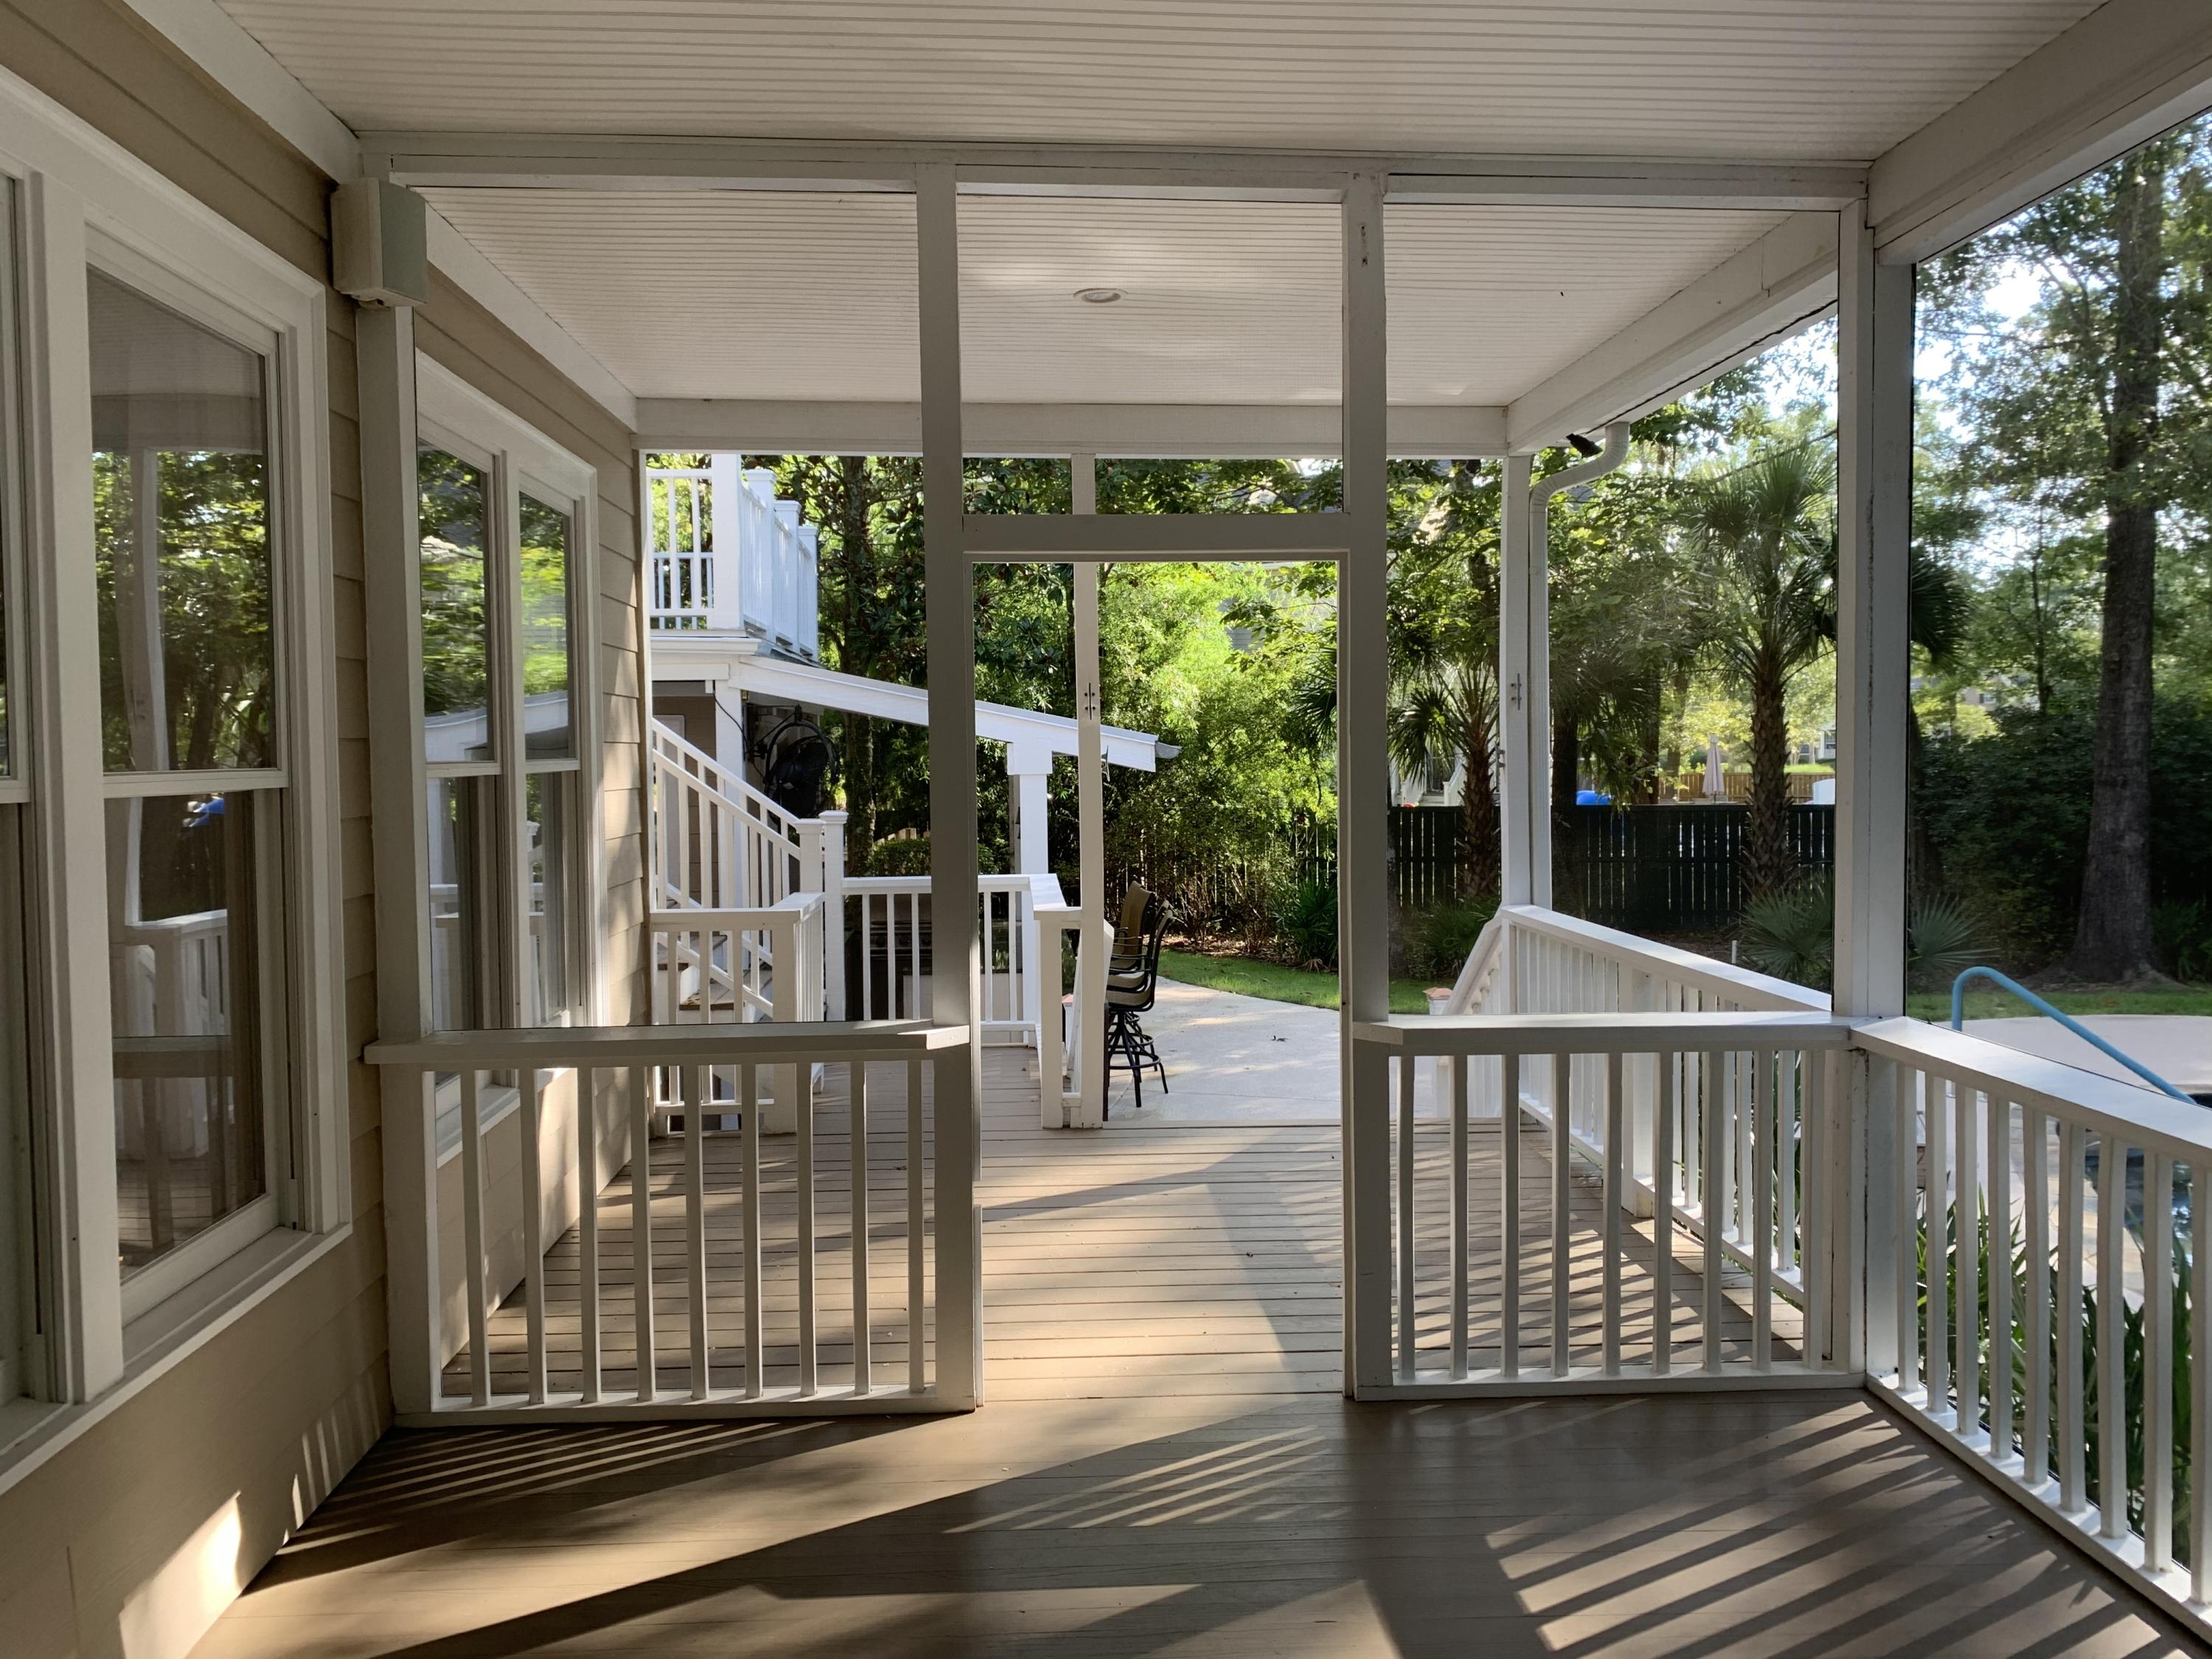 Dunes West Homes For Sale - 1769 Greenspoint, Mount Pleasant, SC - 40